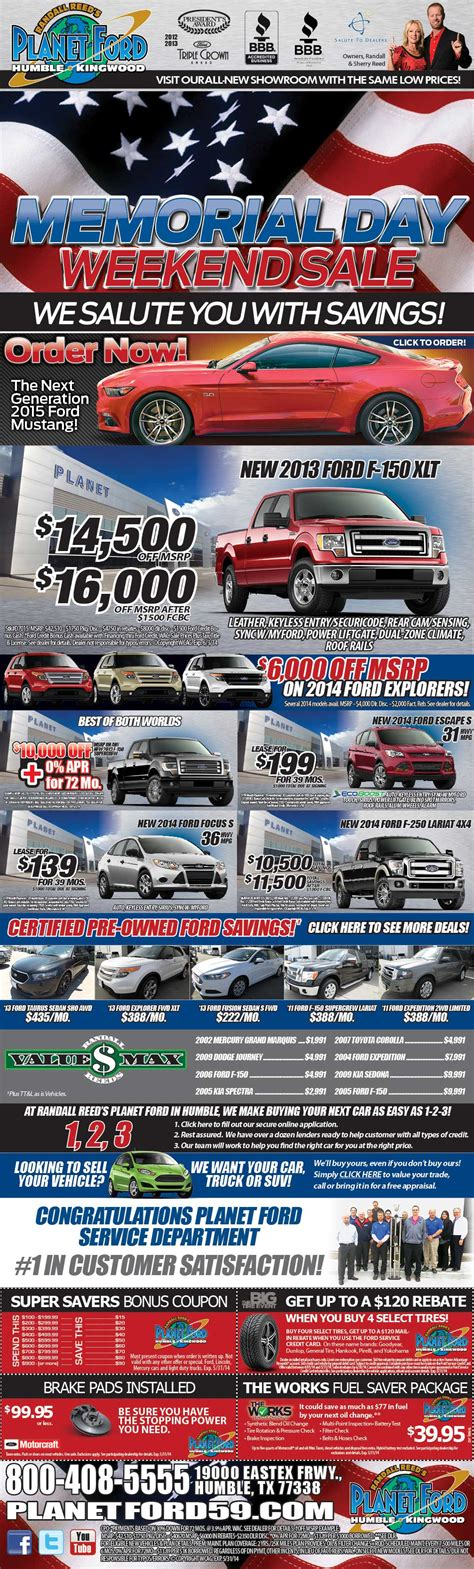 memorial day toyota deals best car deals on memorial day upcomingcarshq com